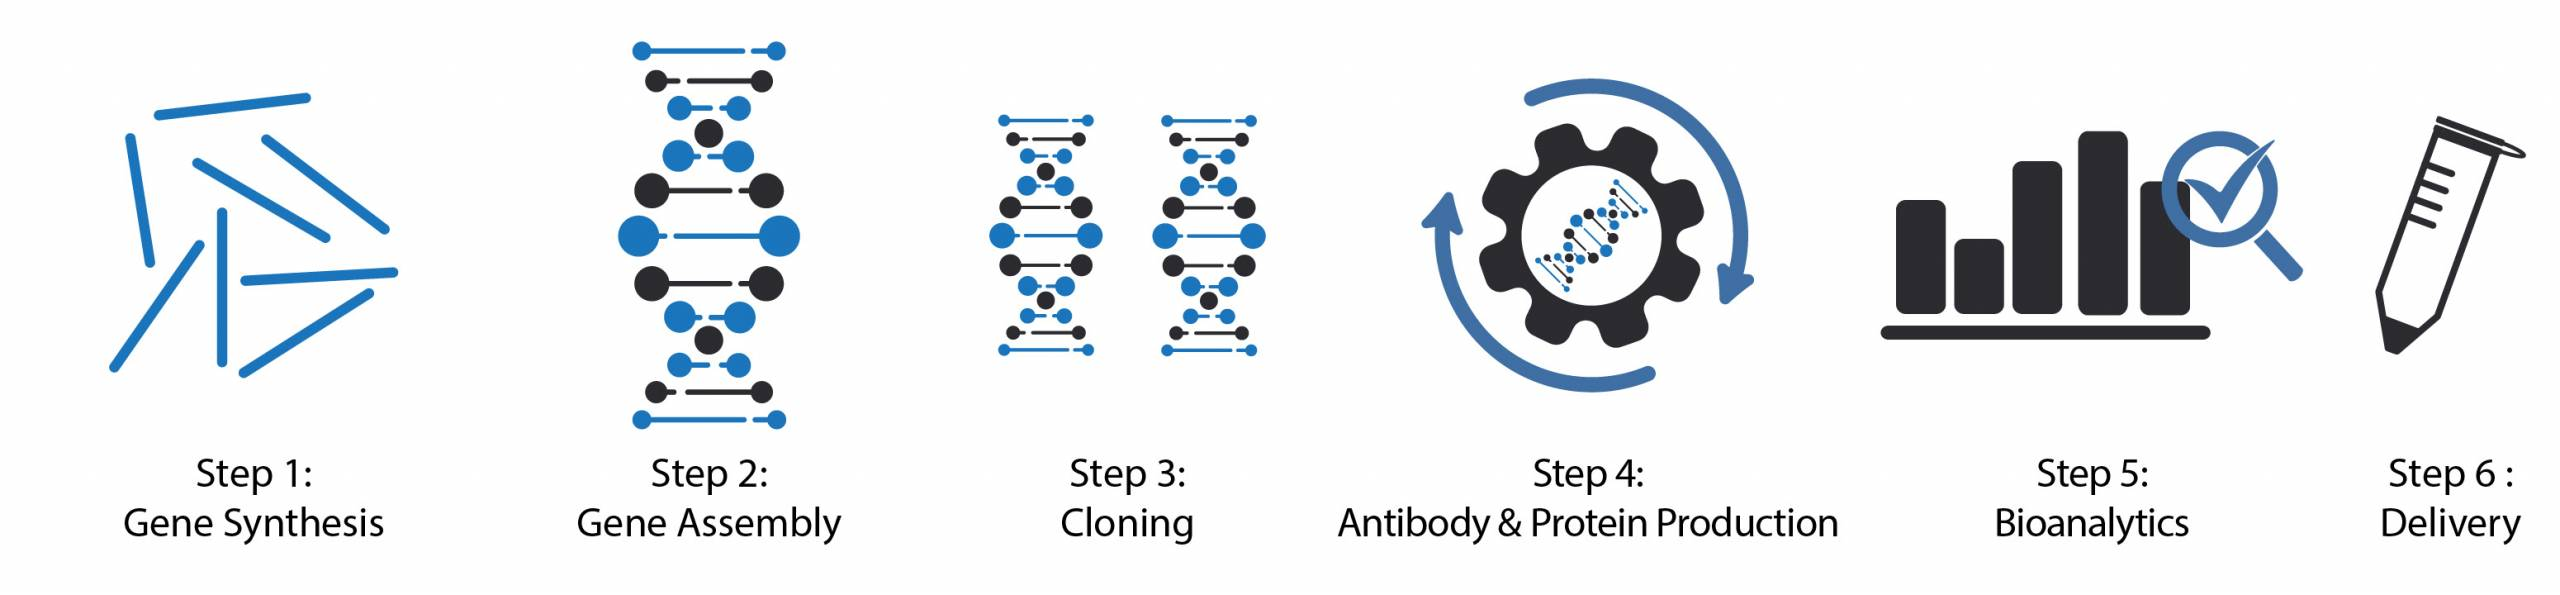 Recombinant Antibody, Transient Expression, Gene Synthesis, Cloning, Antibody and Proteins